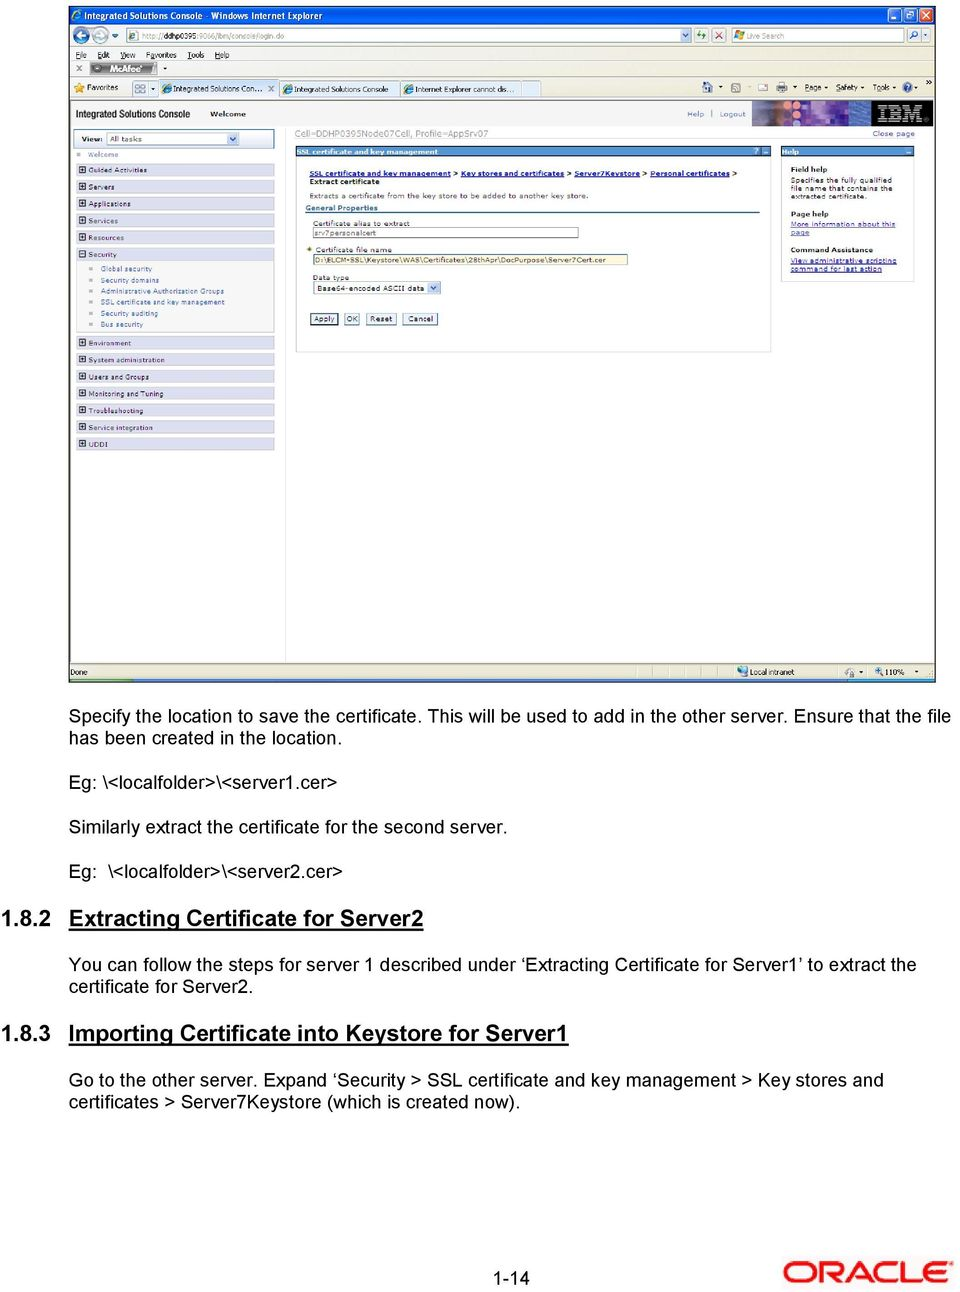 2 Extracting Certificate for Server2 You can follow the steps for server 1 described under Extracting Certificate for Server1 to extract the certificate for